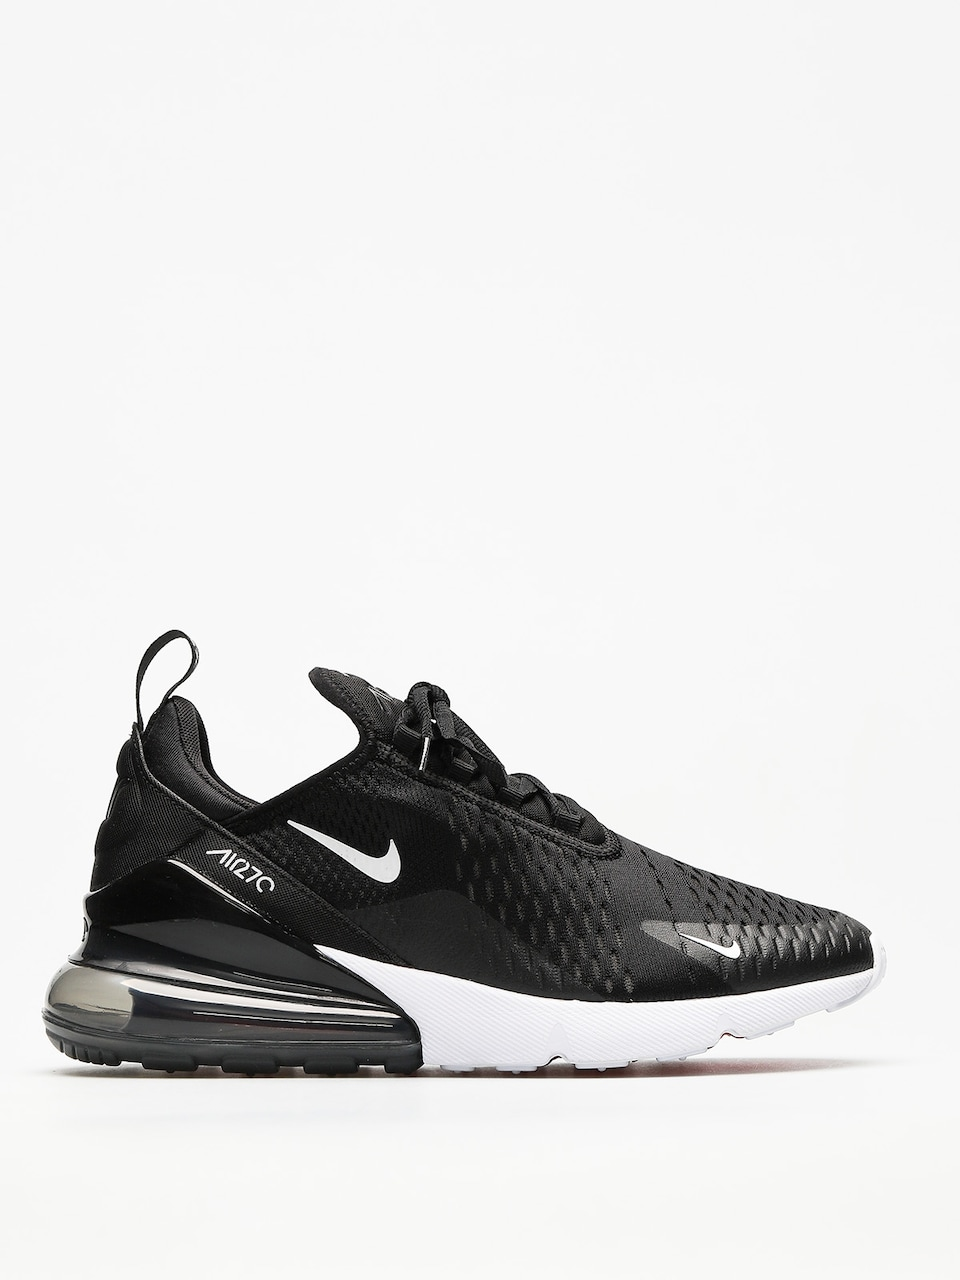 Kup Nike Air Max 270 Blackanthracite white Buty Online